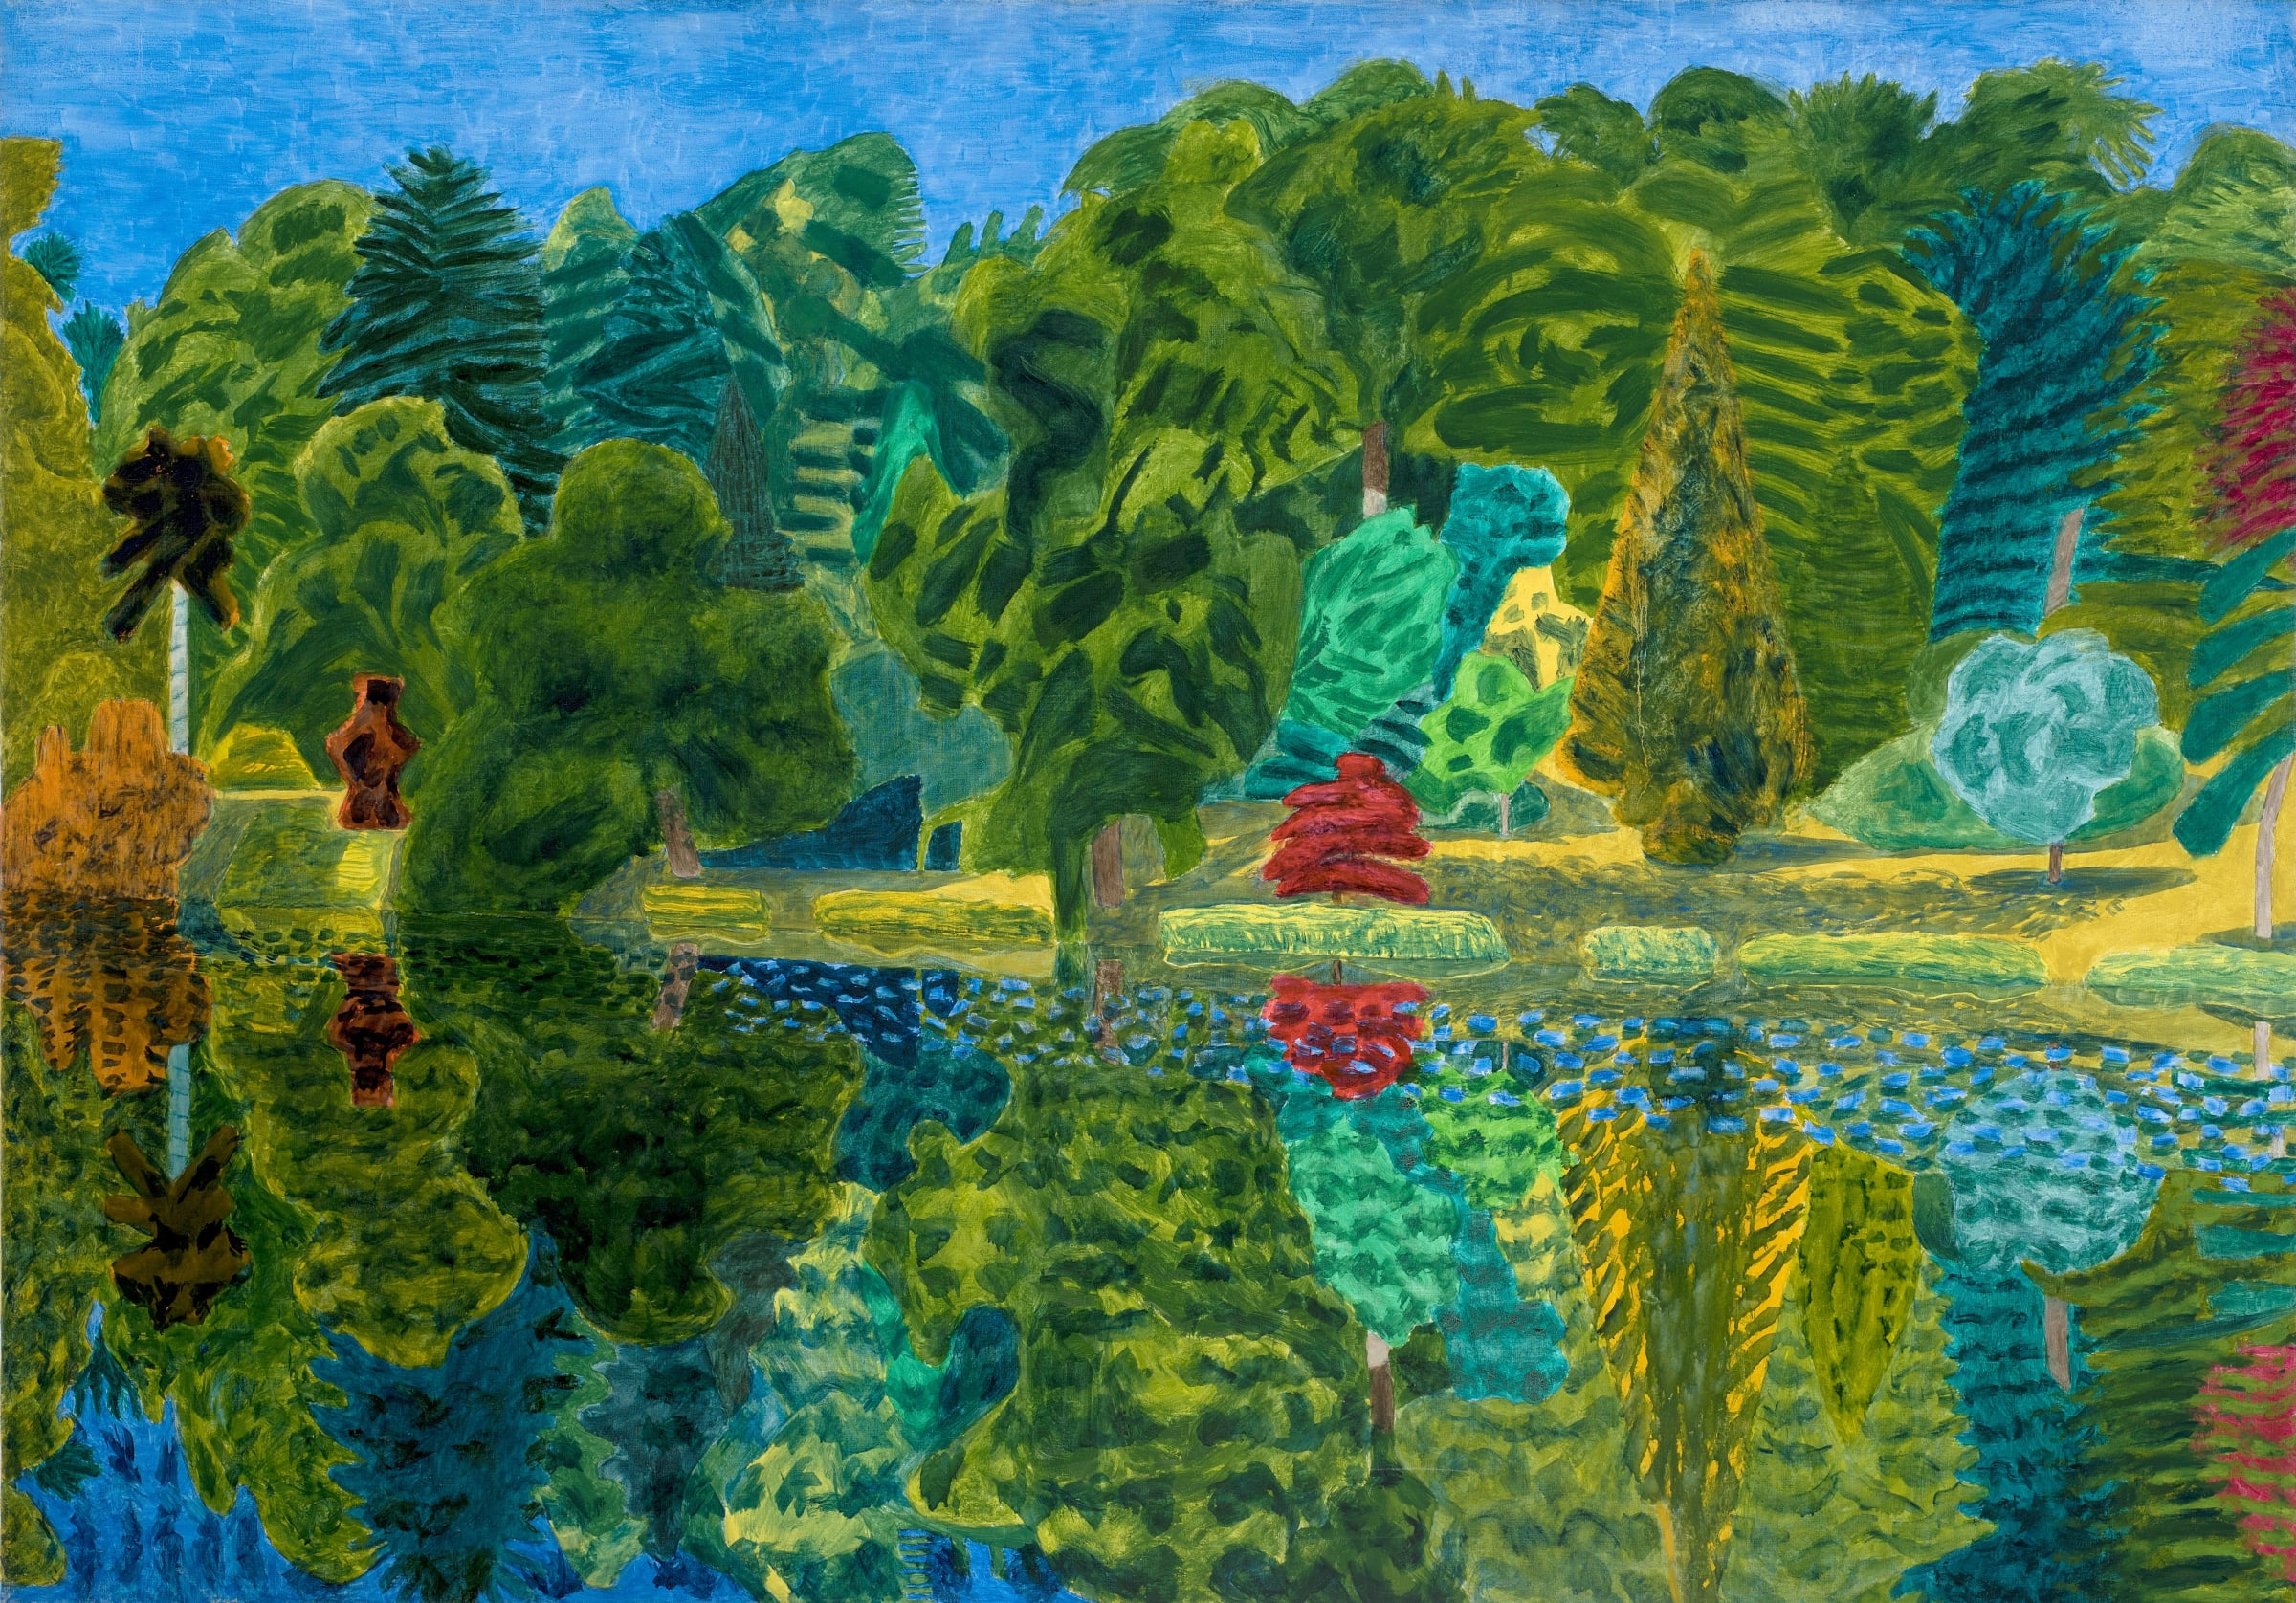 """<span class=""""link fancybox-details-link""""><a href=""""/exhibitions/12/works/image285/"""">View Detail Page</a></span><p><strong>Adrian Berg RA (1929-2011)</strong></p><p>Stourhead, 29th June</p><p>1993, oil on canvas, 132 x 188cm</p>"""